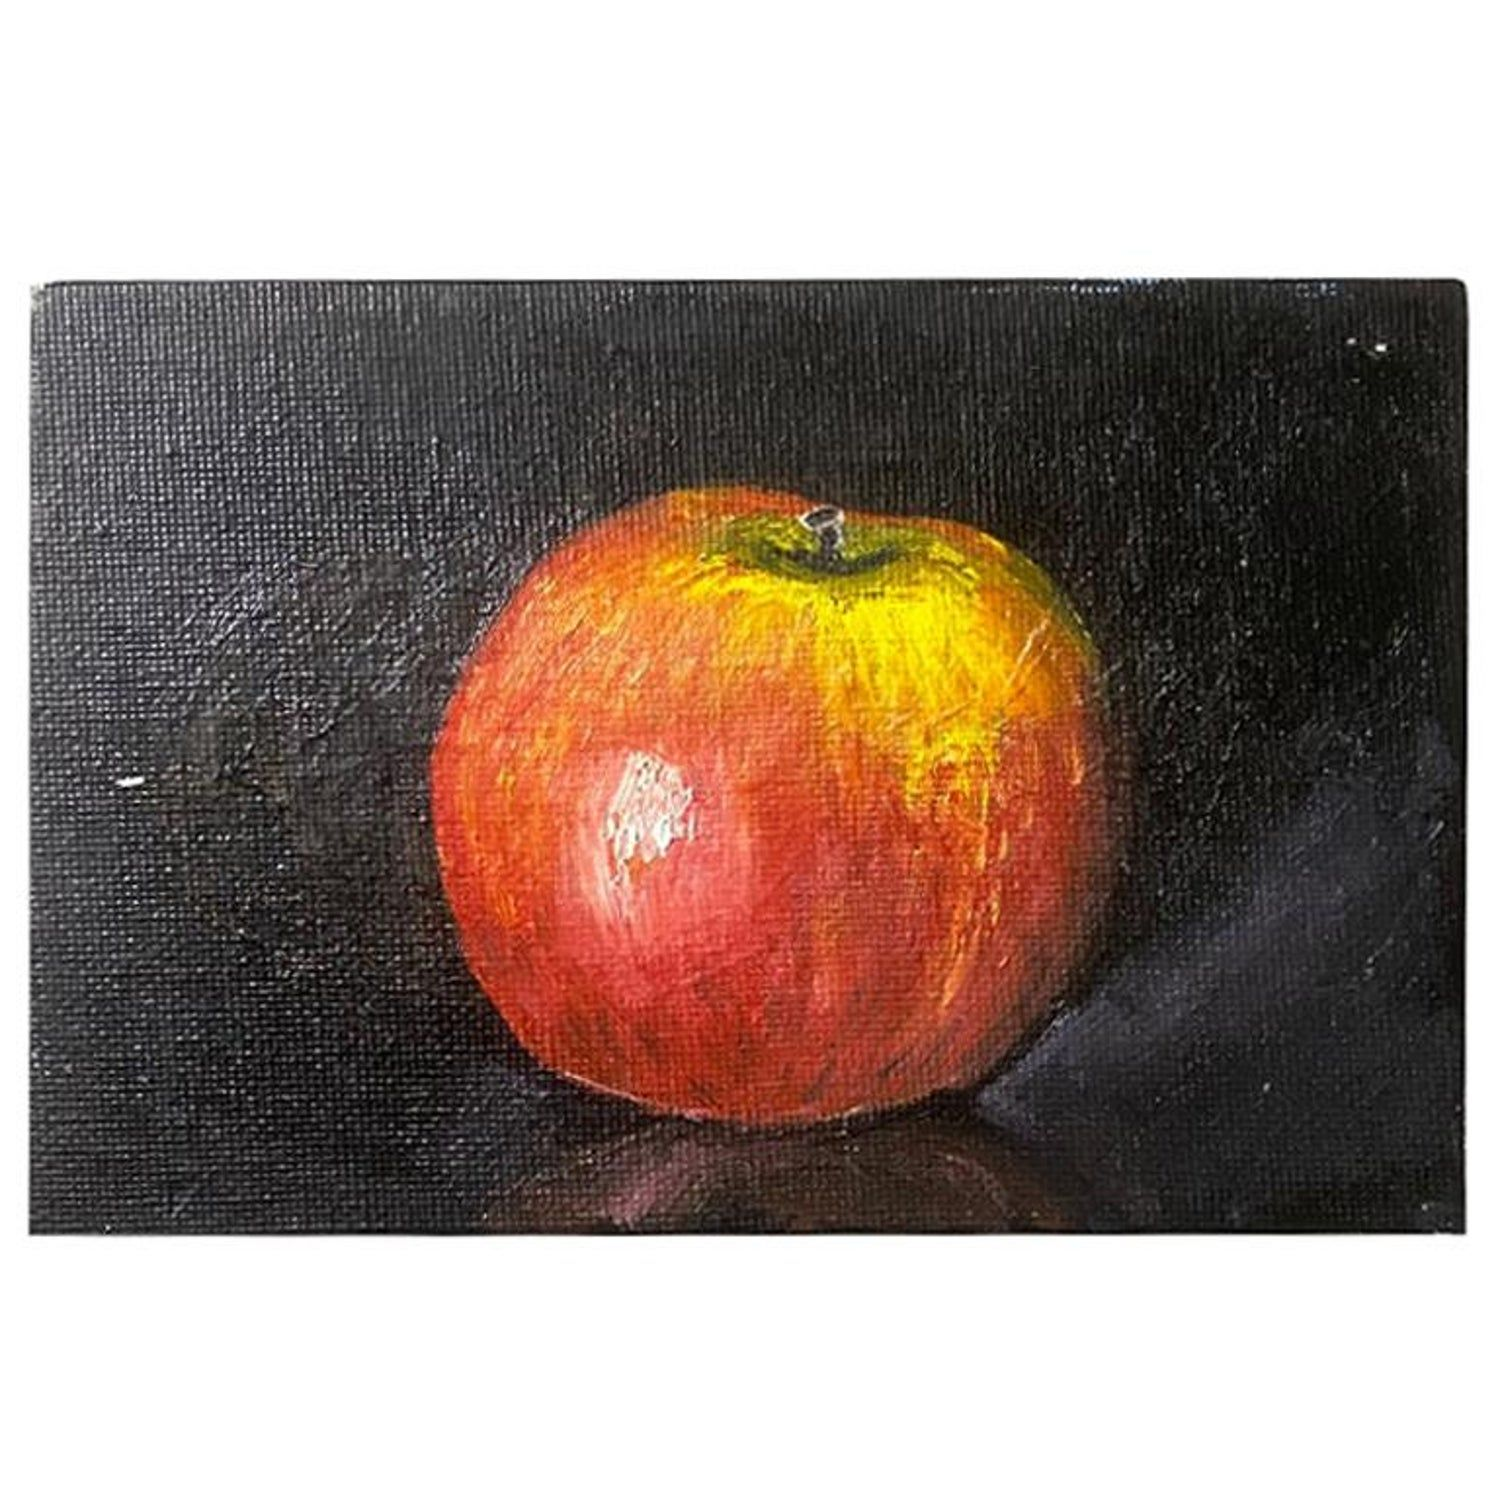 Still Life Painting Of A Red Apple In 2020 Still Life Painting Watercolor Paintings For Beginners Painting